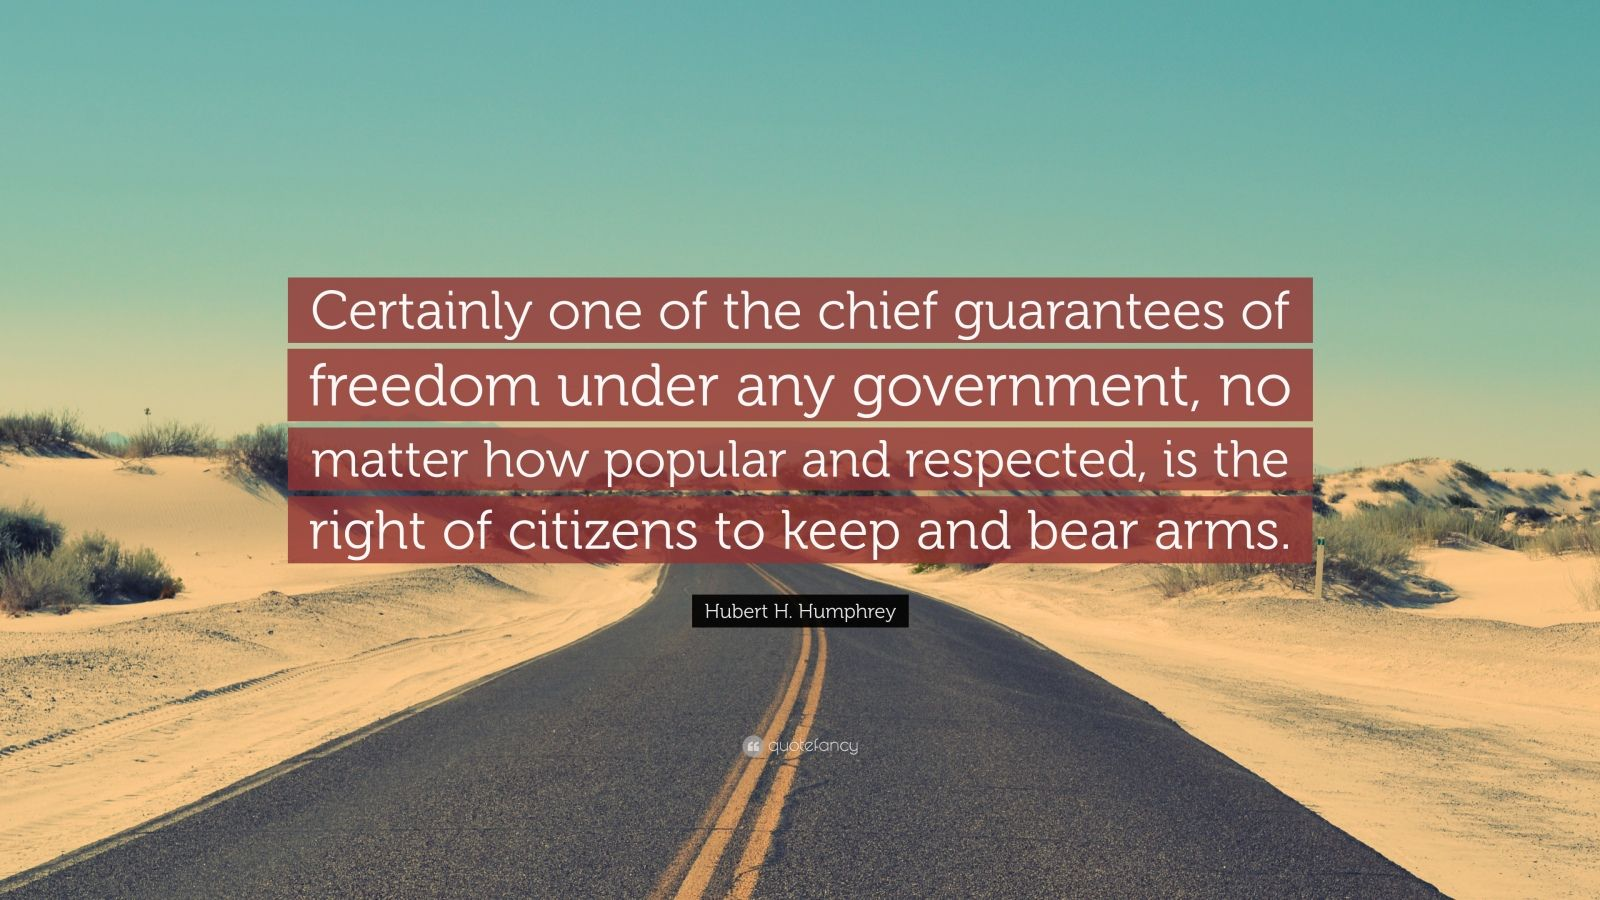 """Hubert H. Humphrey Quote: """"Certainly one of the chief guarantees of freedom under any government, no matter how popular and respected, is the right of citizens to keep and bear arms."""""""